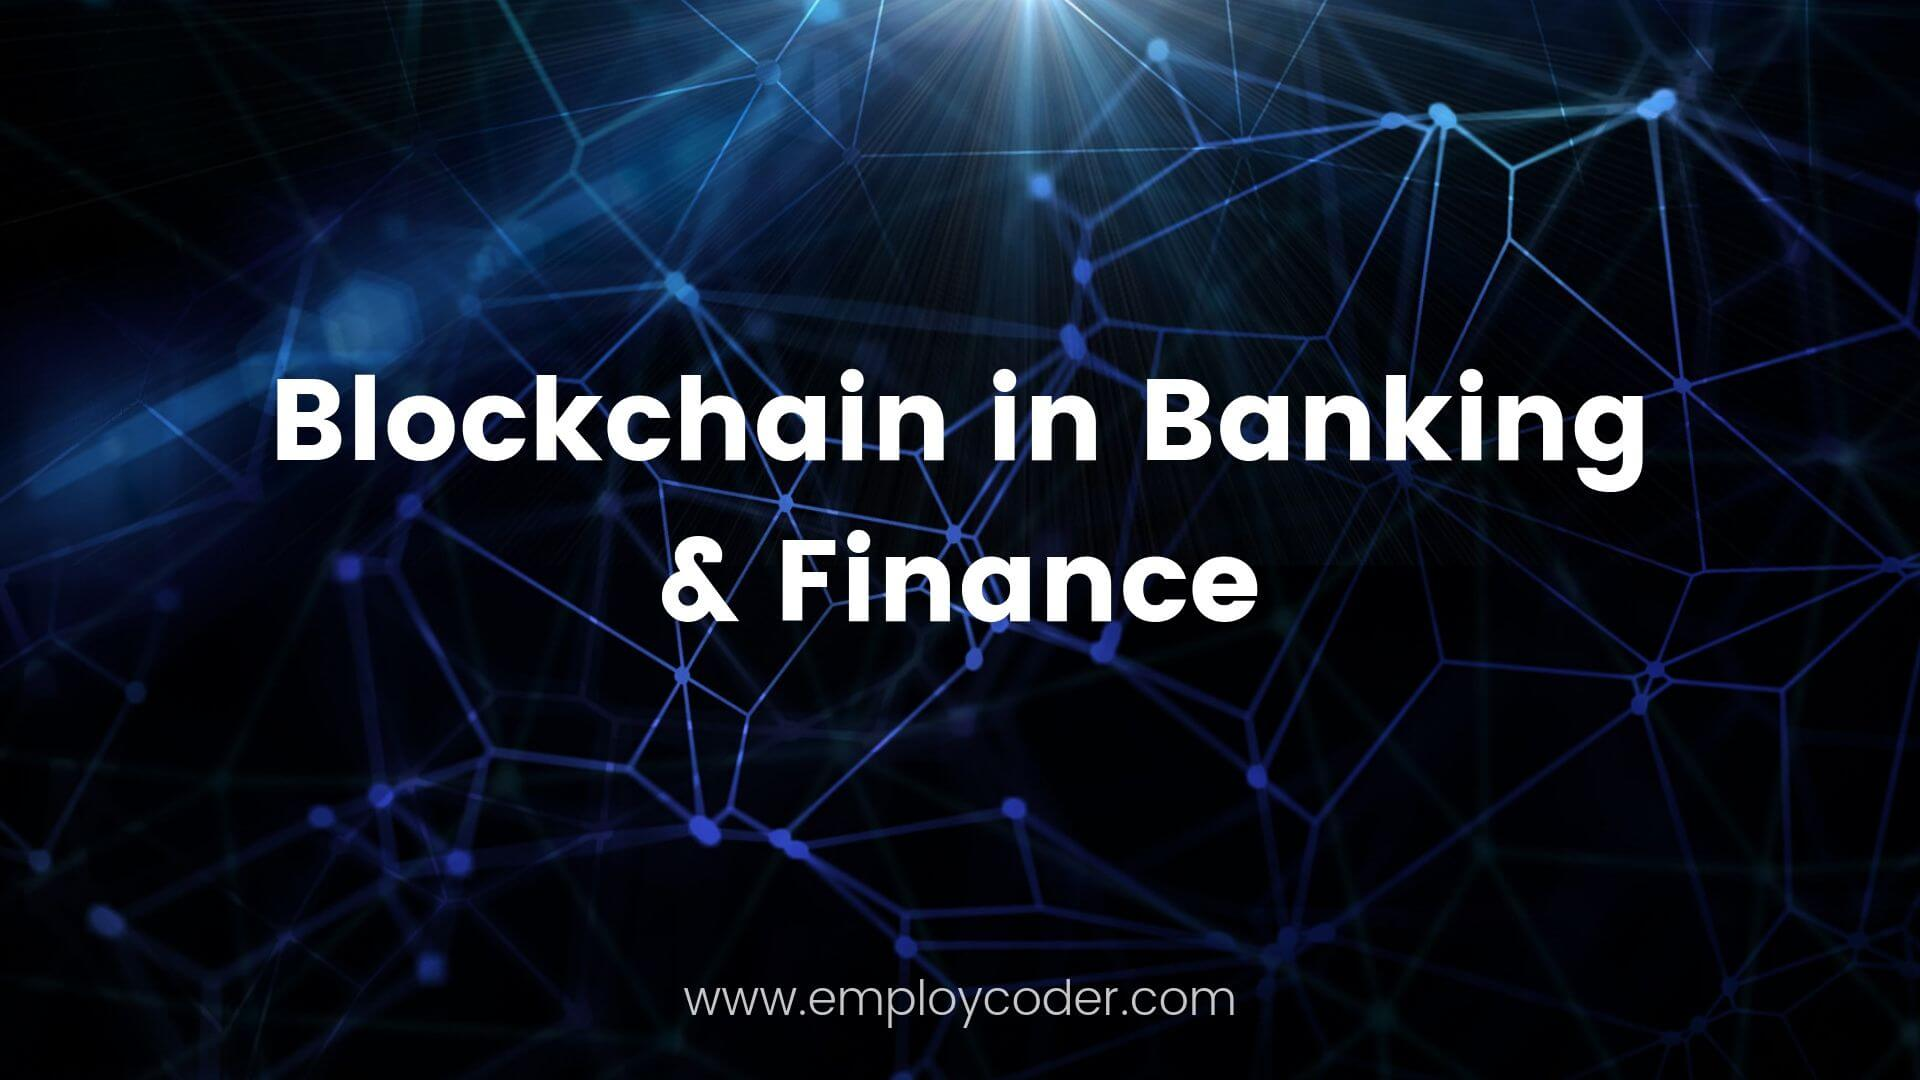 Blockchain in Banking and Finance Industries